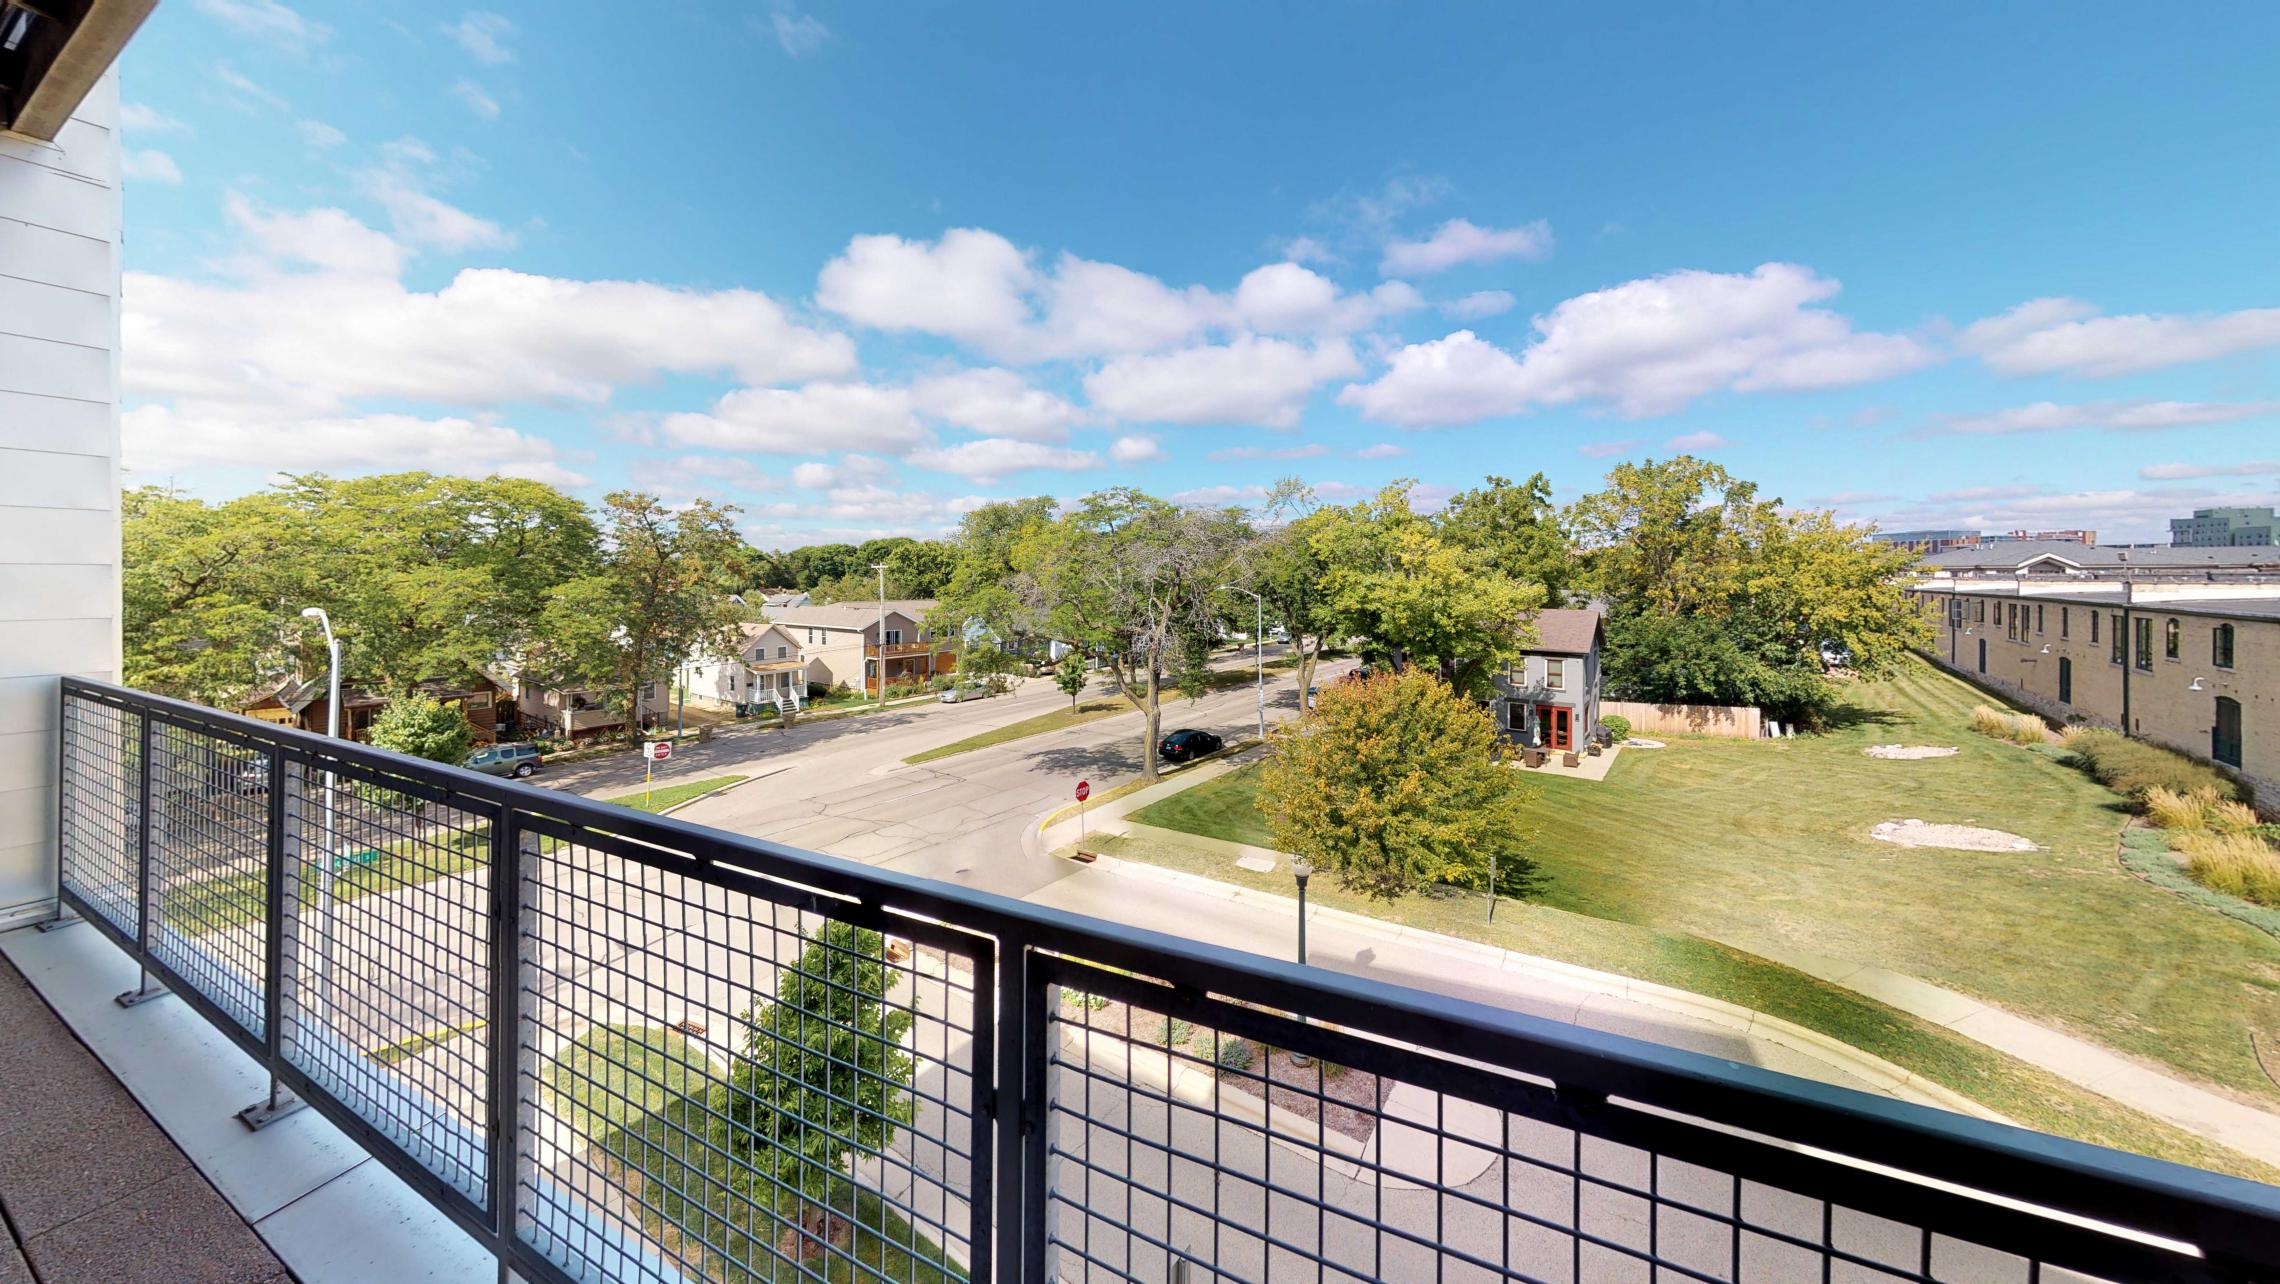 SEVEN27-Apartment-312-Modern-Upscale-Views-City-Downtown-Madison-Lake-Terrace-Balcony-Luxury.jpg